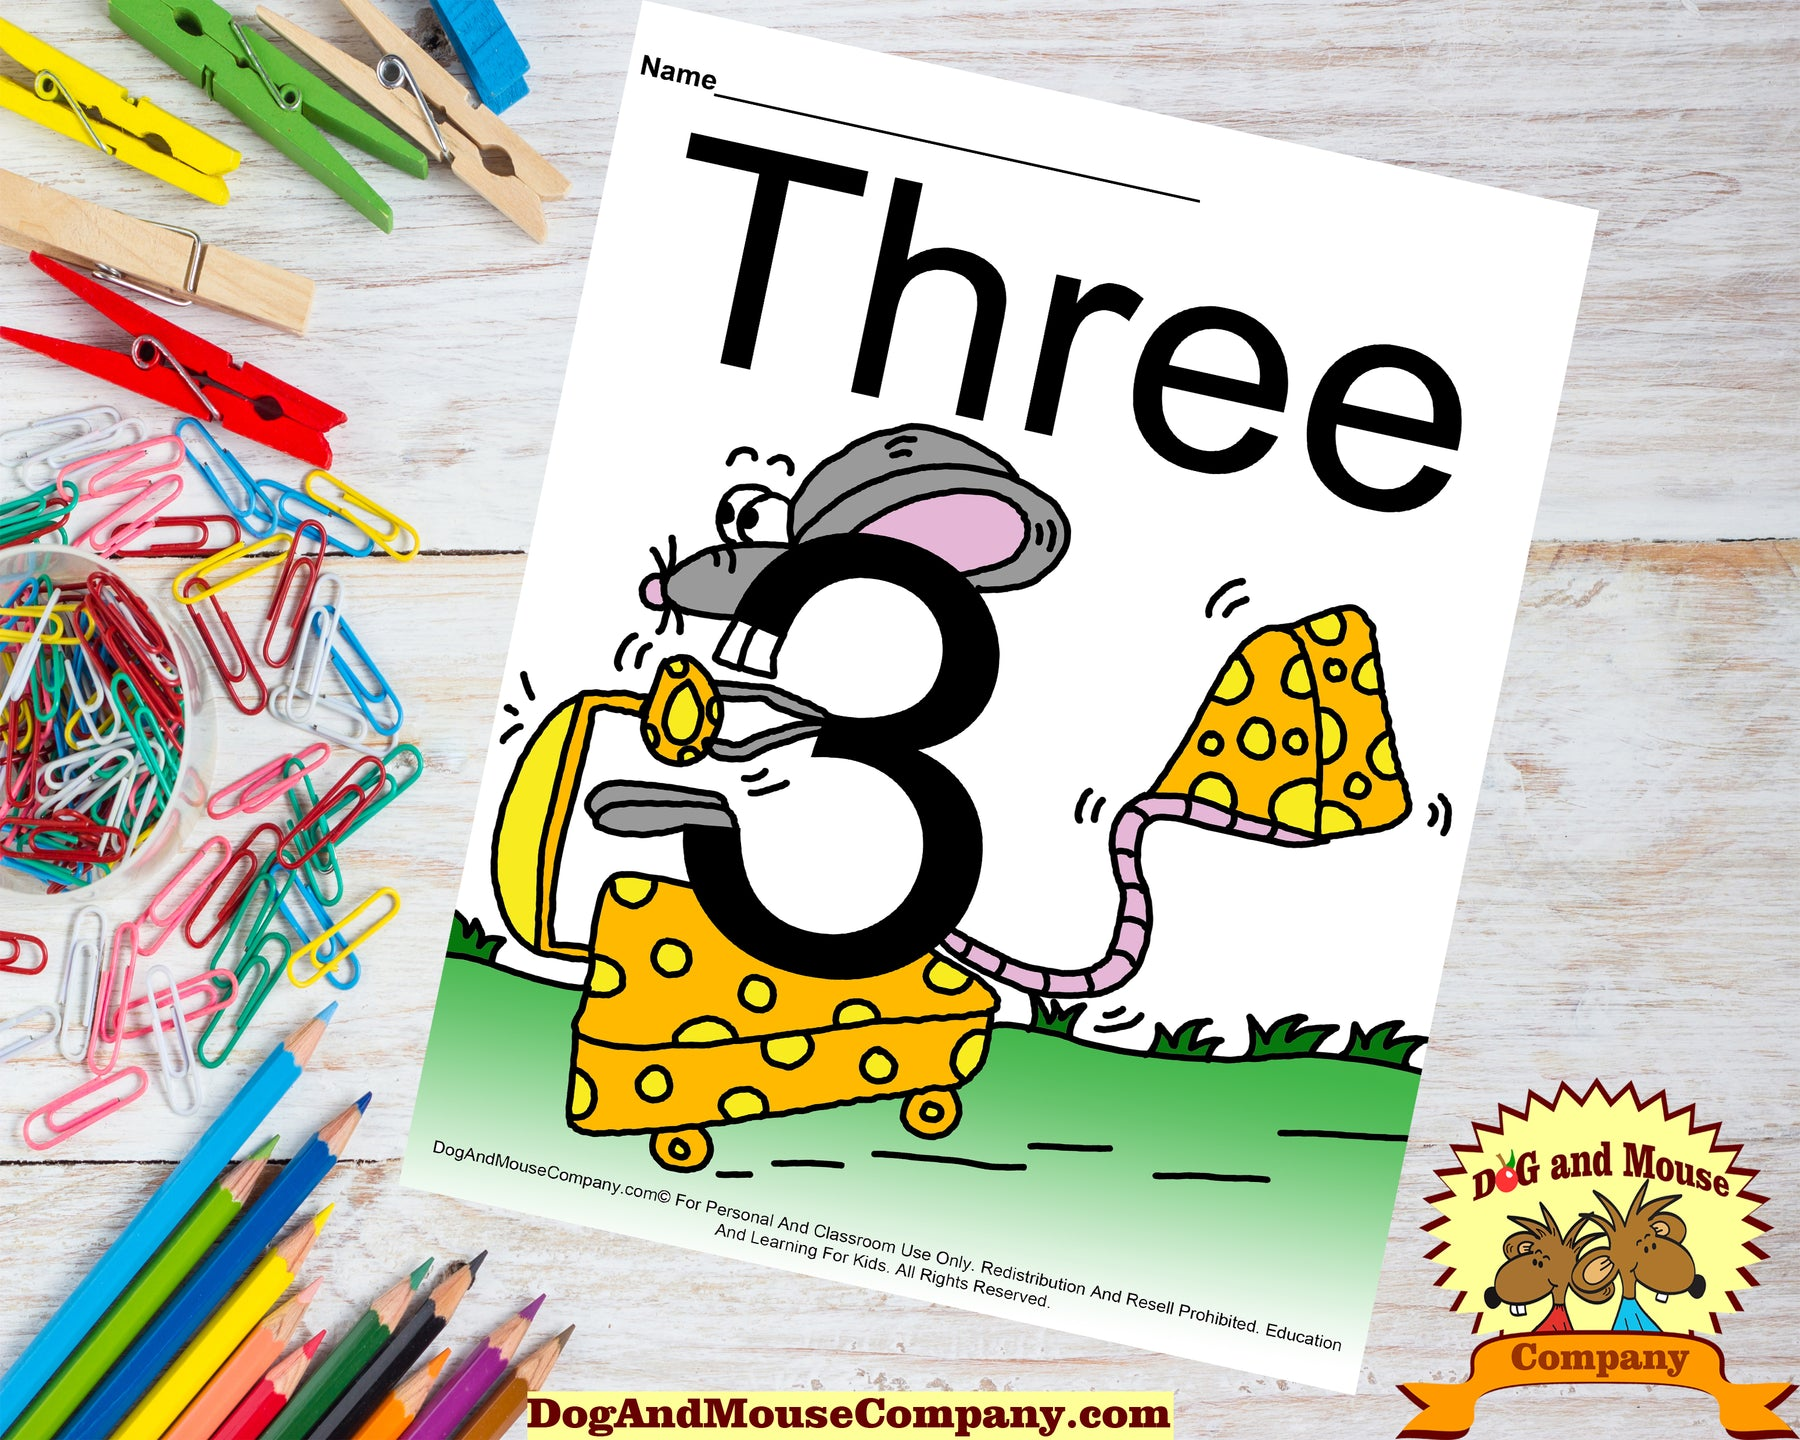 Learn The Number Three With Mice Colored Template by DogAndMouseCompany.com | Dog And Mouse Company | Mouse riding a car holding cheese in his tail